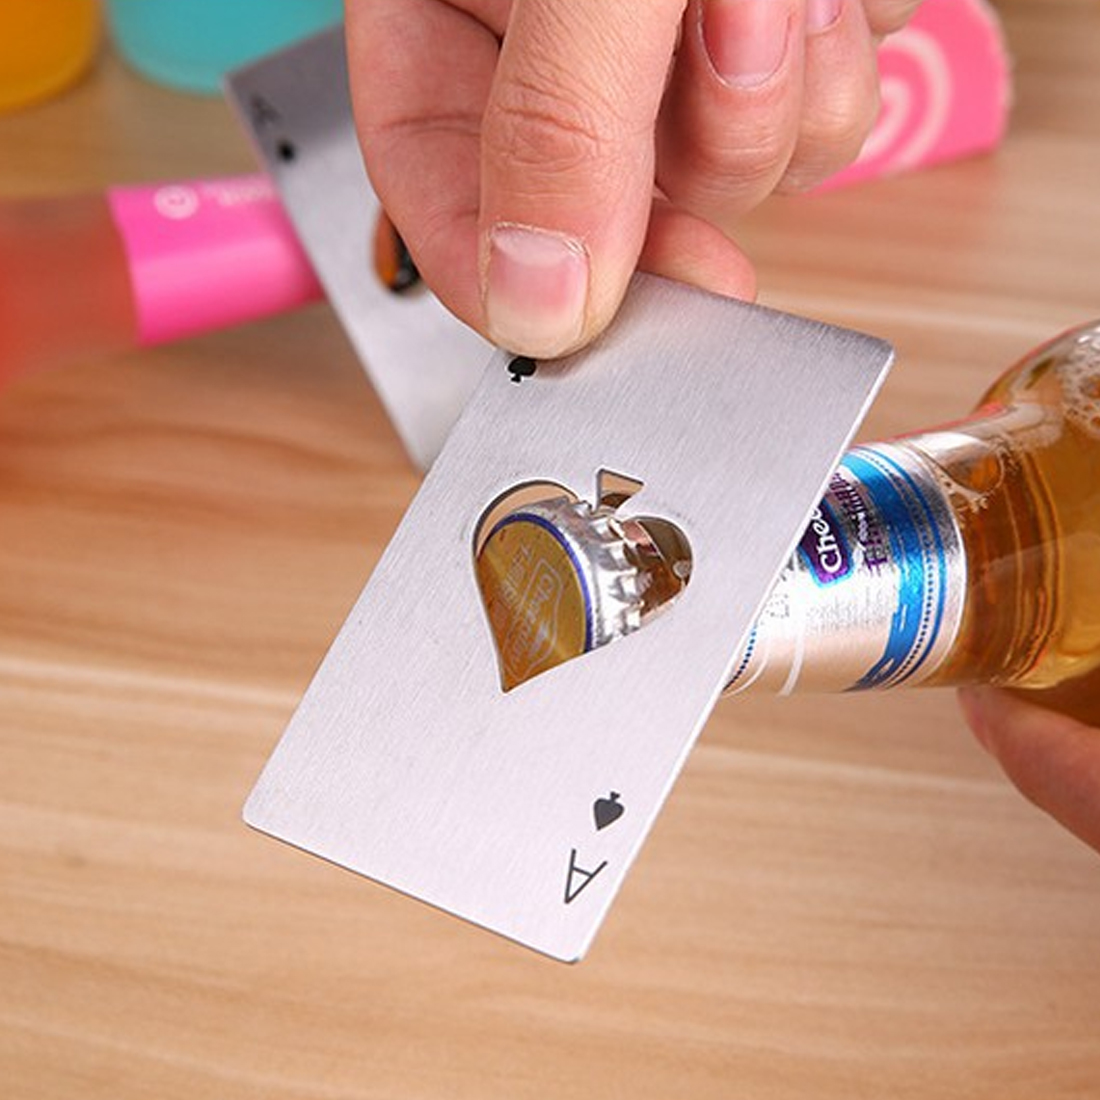 New 1Pc New Stylish Poker Playing Card A Of Spades Bar Tool Soda Beer Bottle Cap Opener High Quality